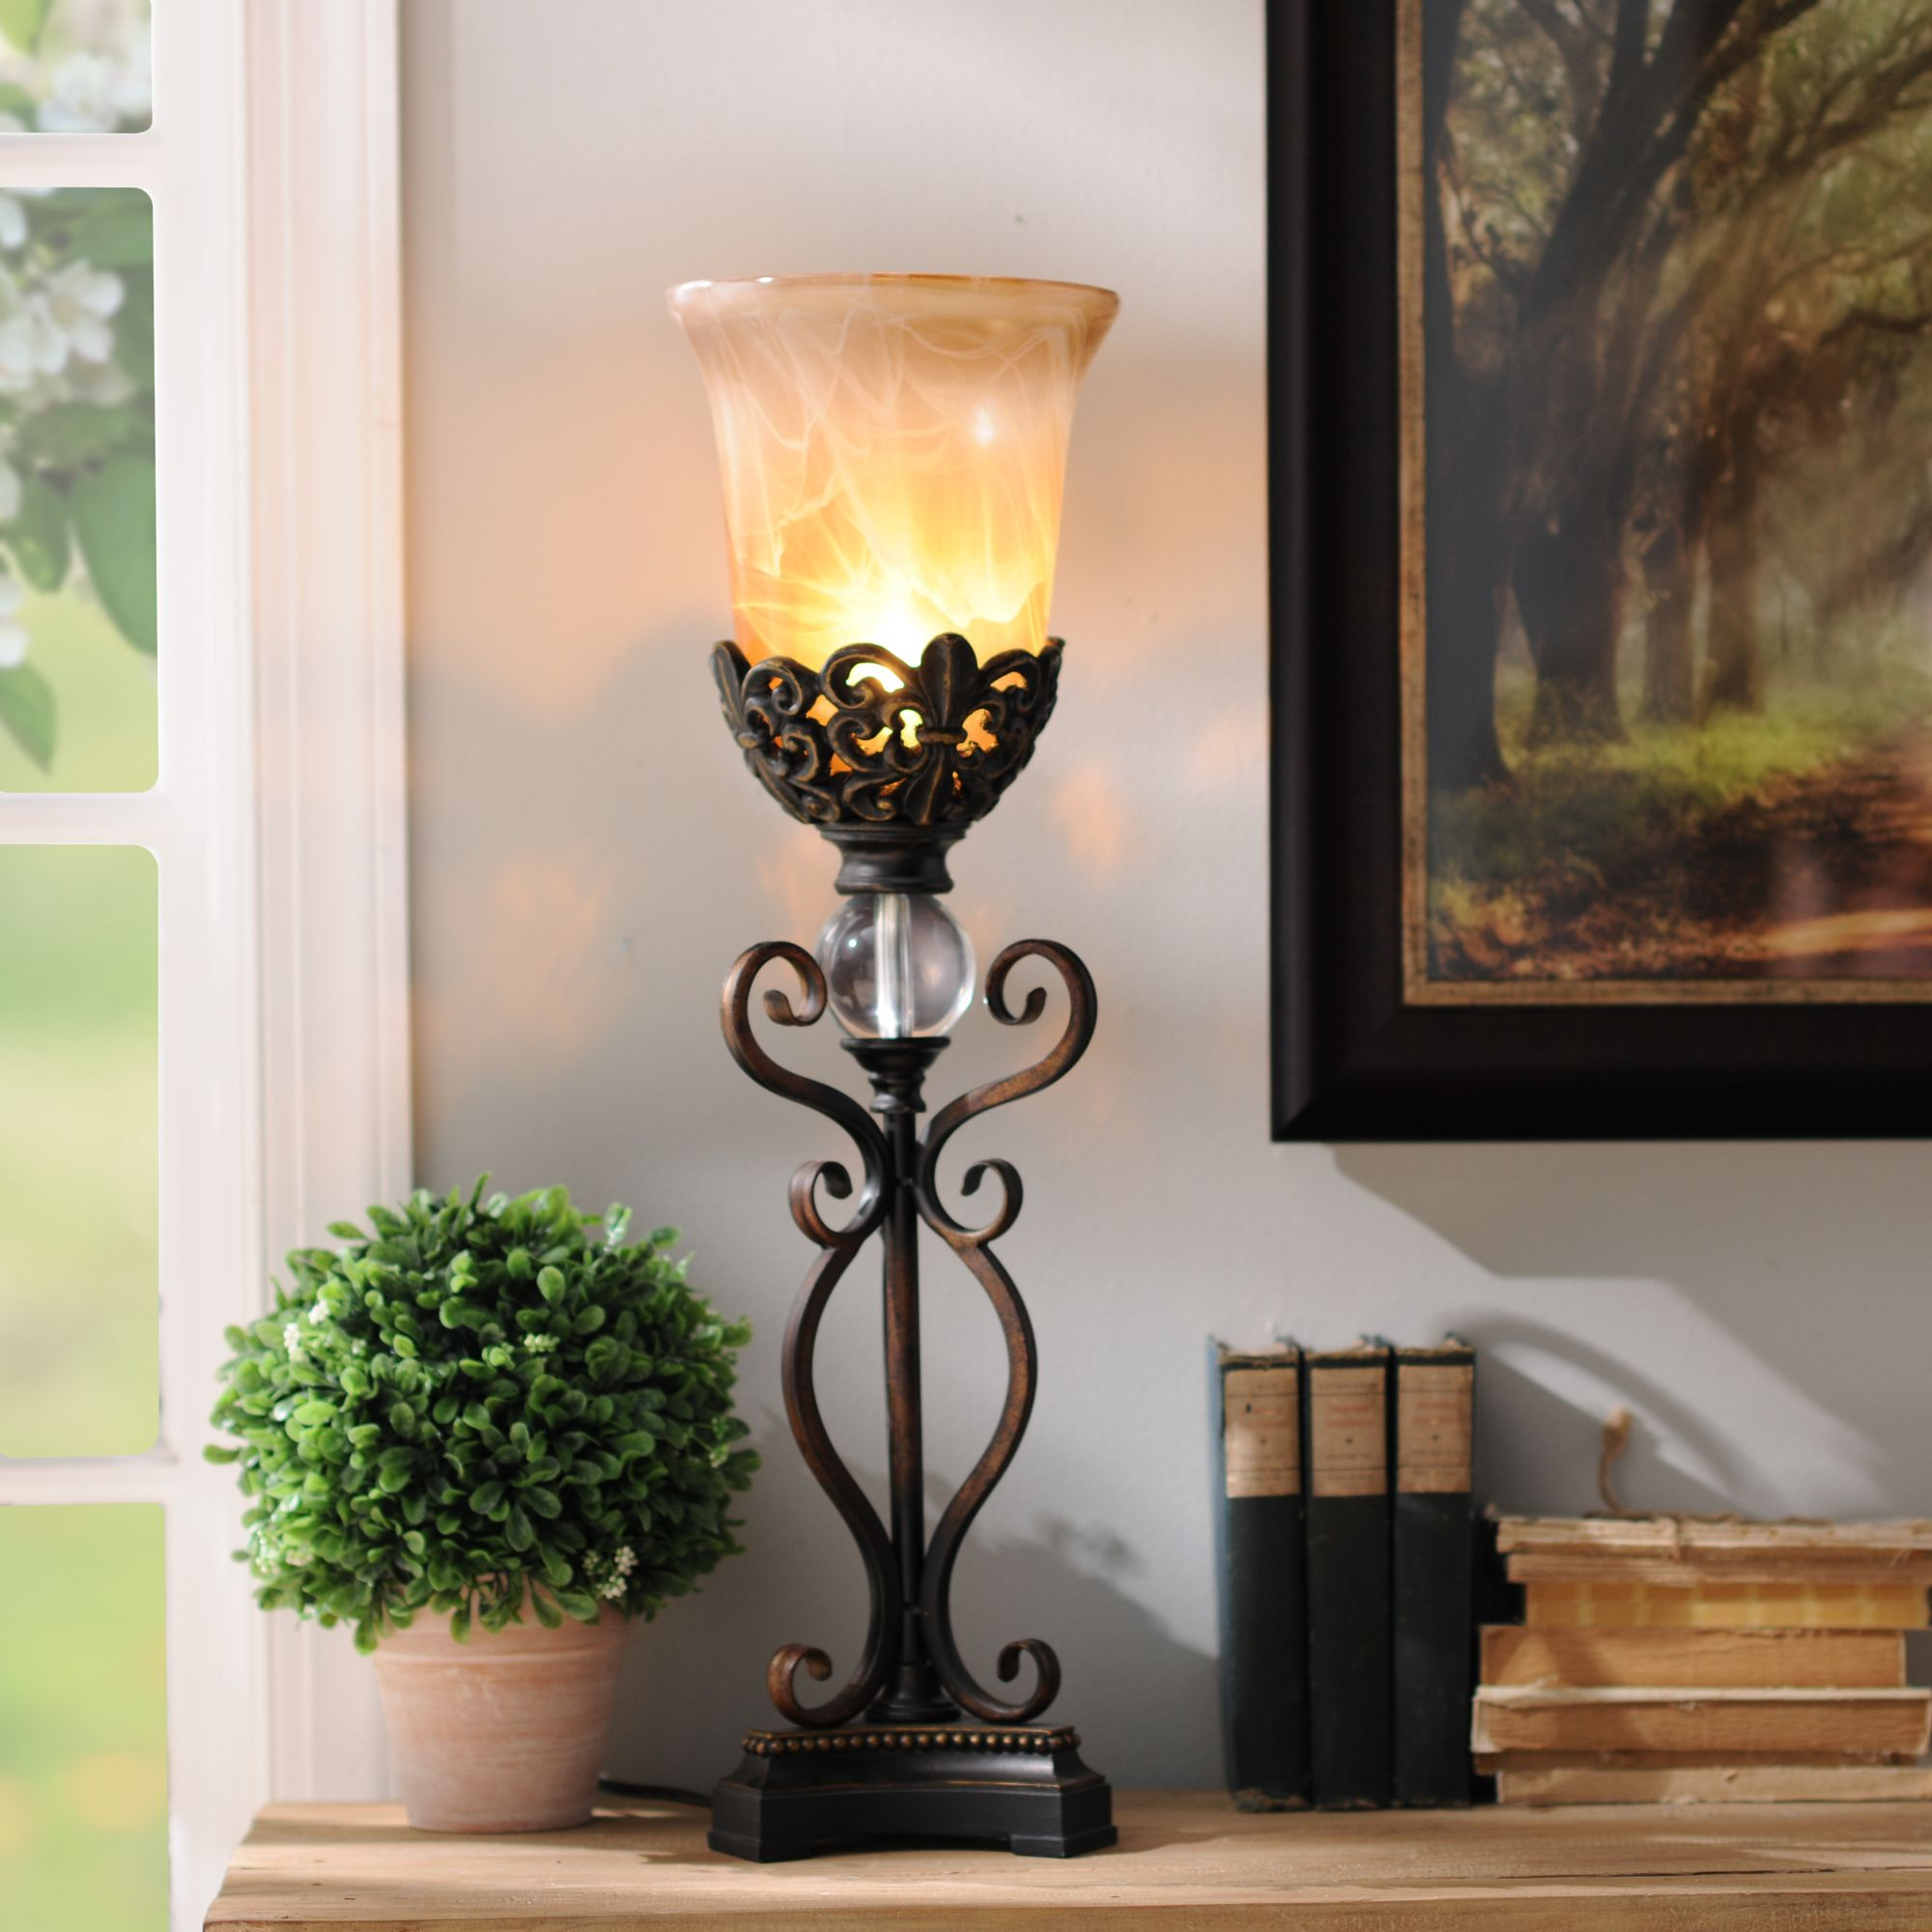 camilla uplight lamps lighting tuscan decorating decor accent table decorate your home with our this lamp beautiful and intricate farmhouse bench chairs art desk ikea reclining